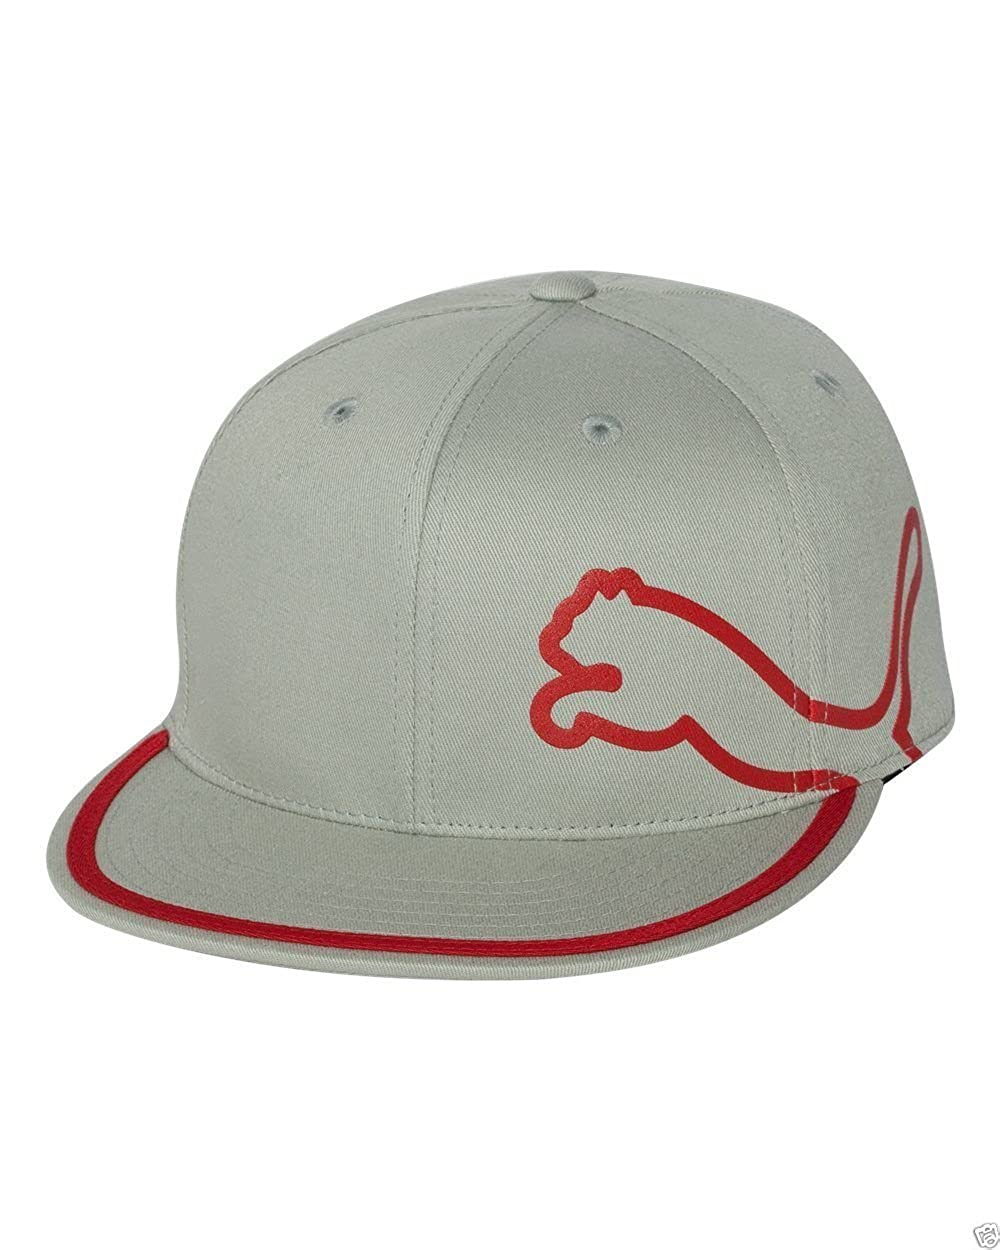 1e16f13228e cheap puma monoline 210 performance fitted golf hat 13f08 7df26  reduced  amazon puma monoline 210 fitted cap gray red clothing 8696e 7088c